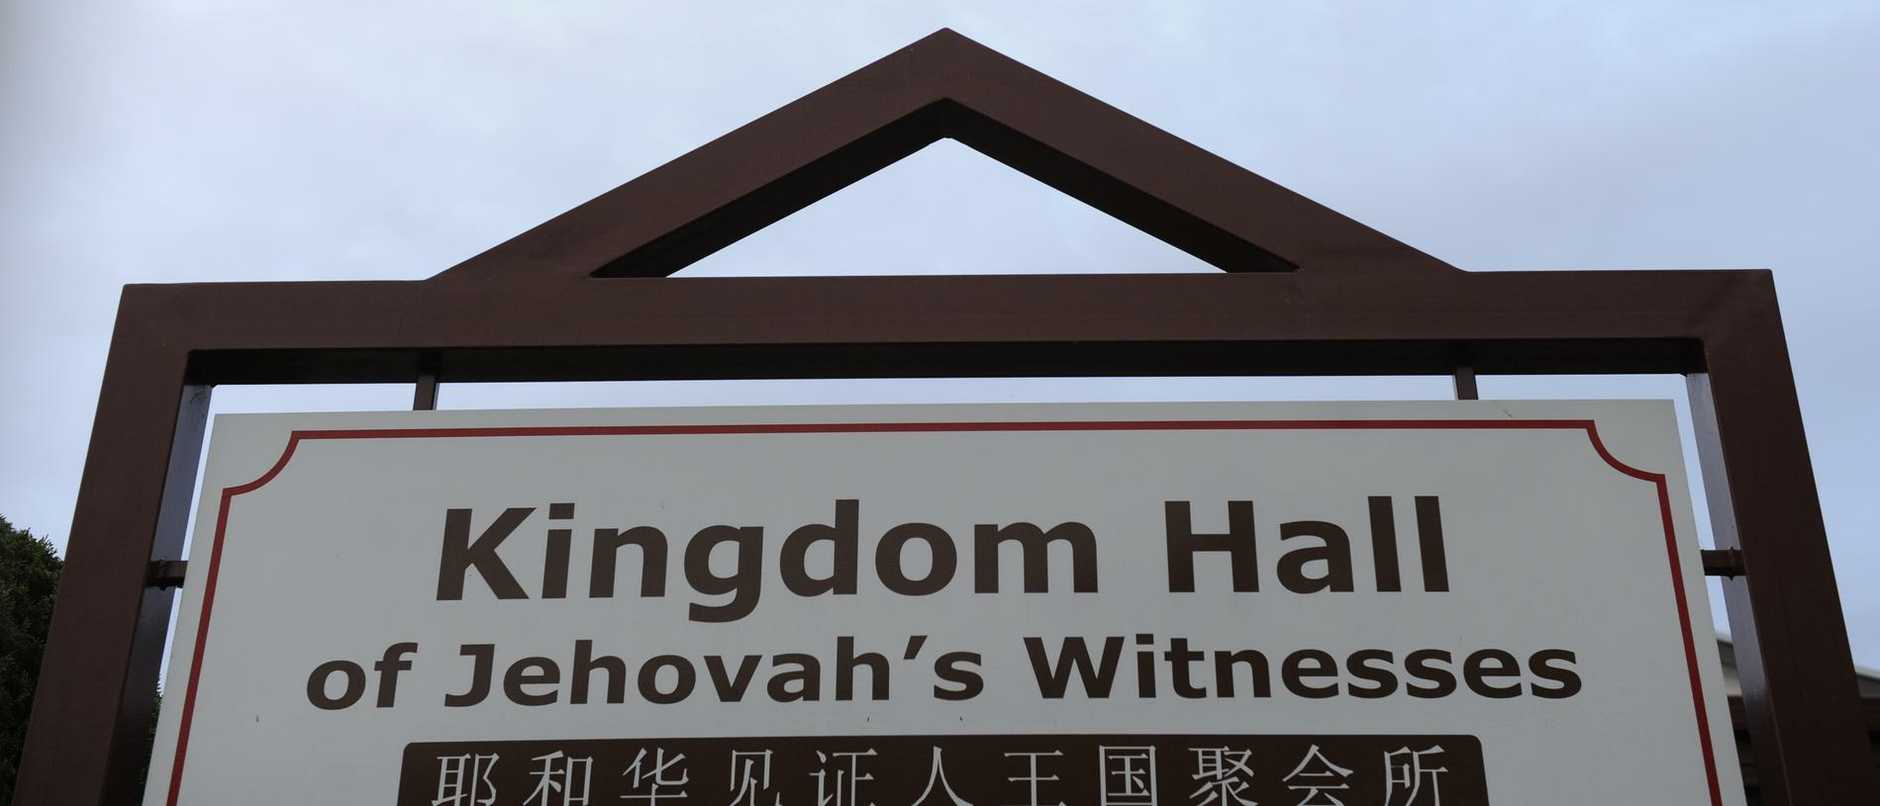 Kingdom Hall of Jehovah's Witness at Albert Street, Clarence Gardens.